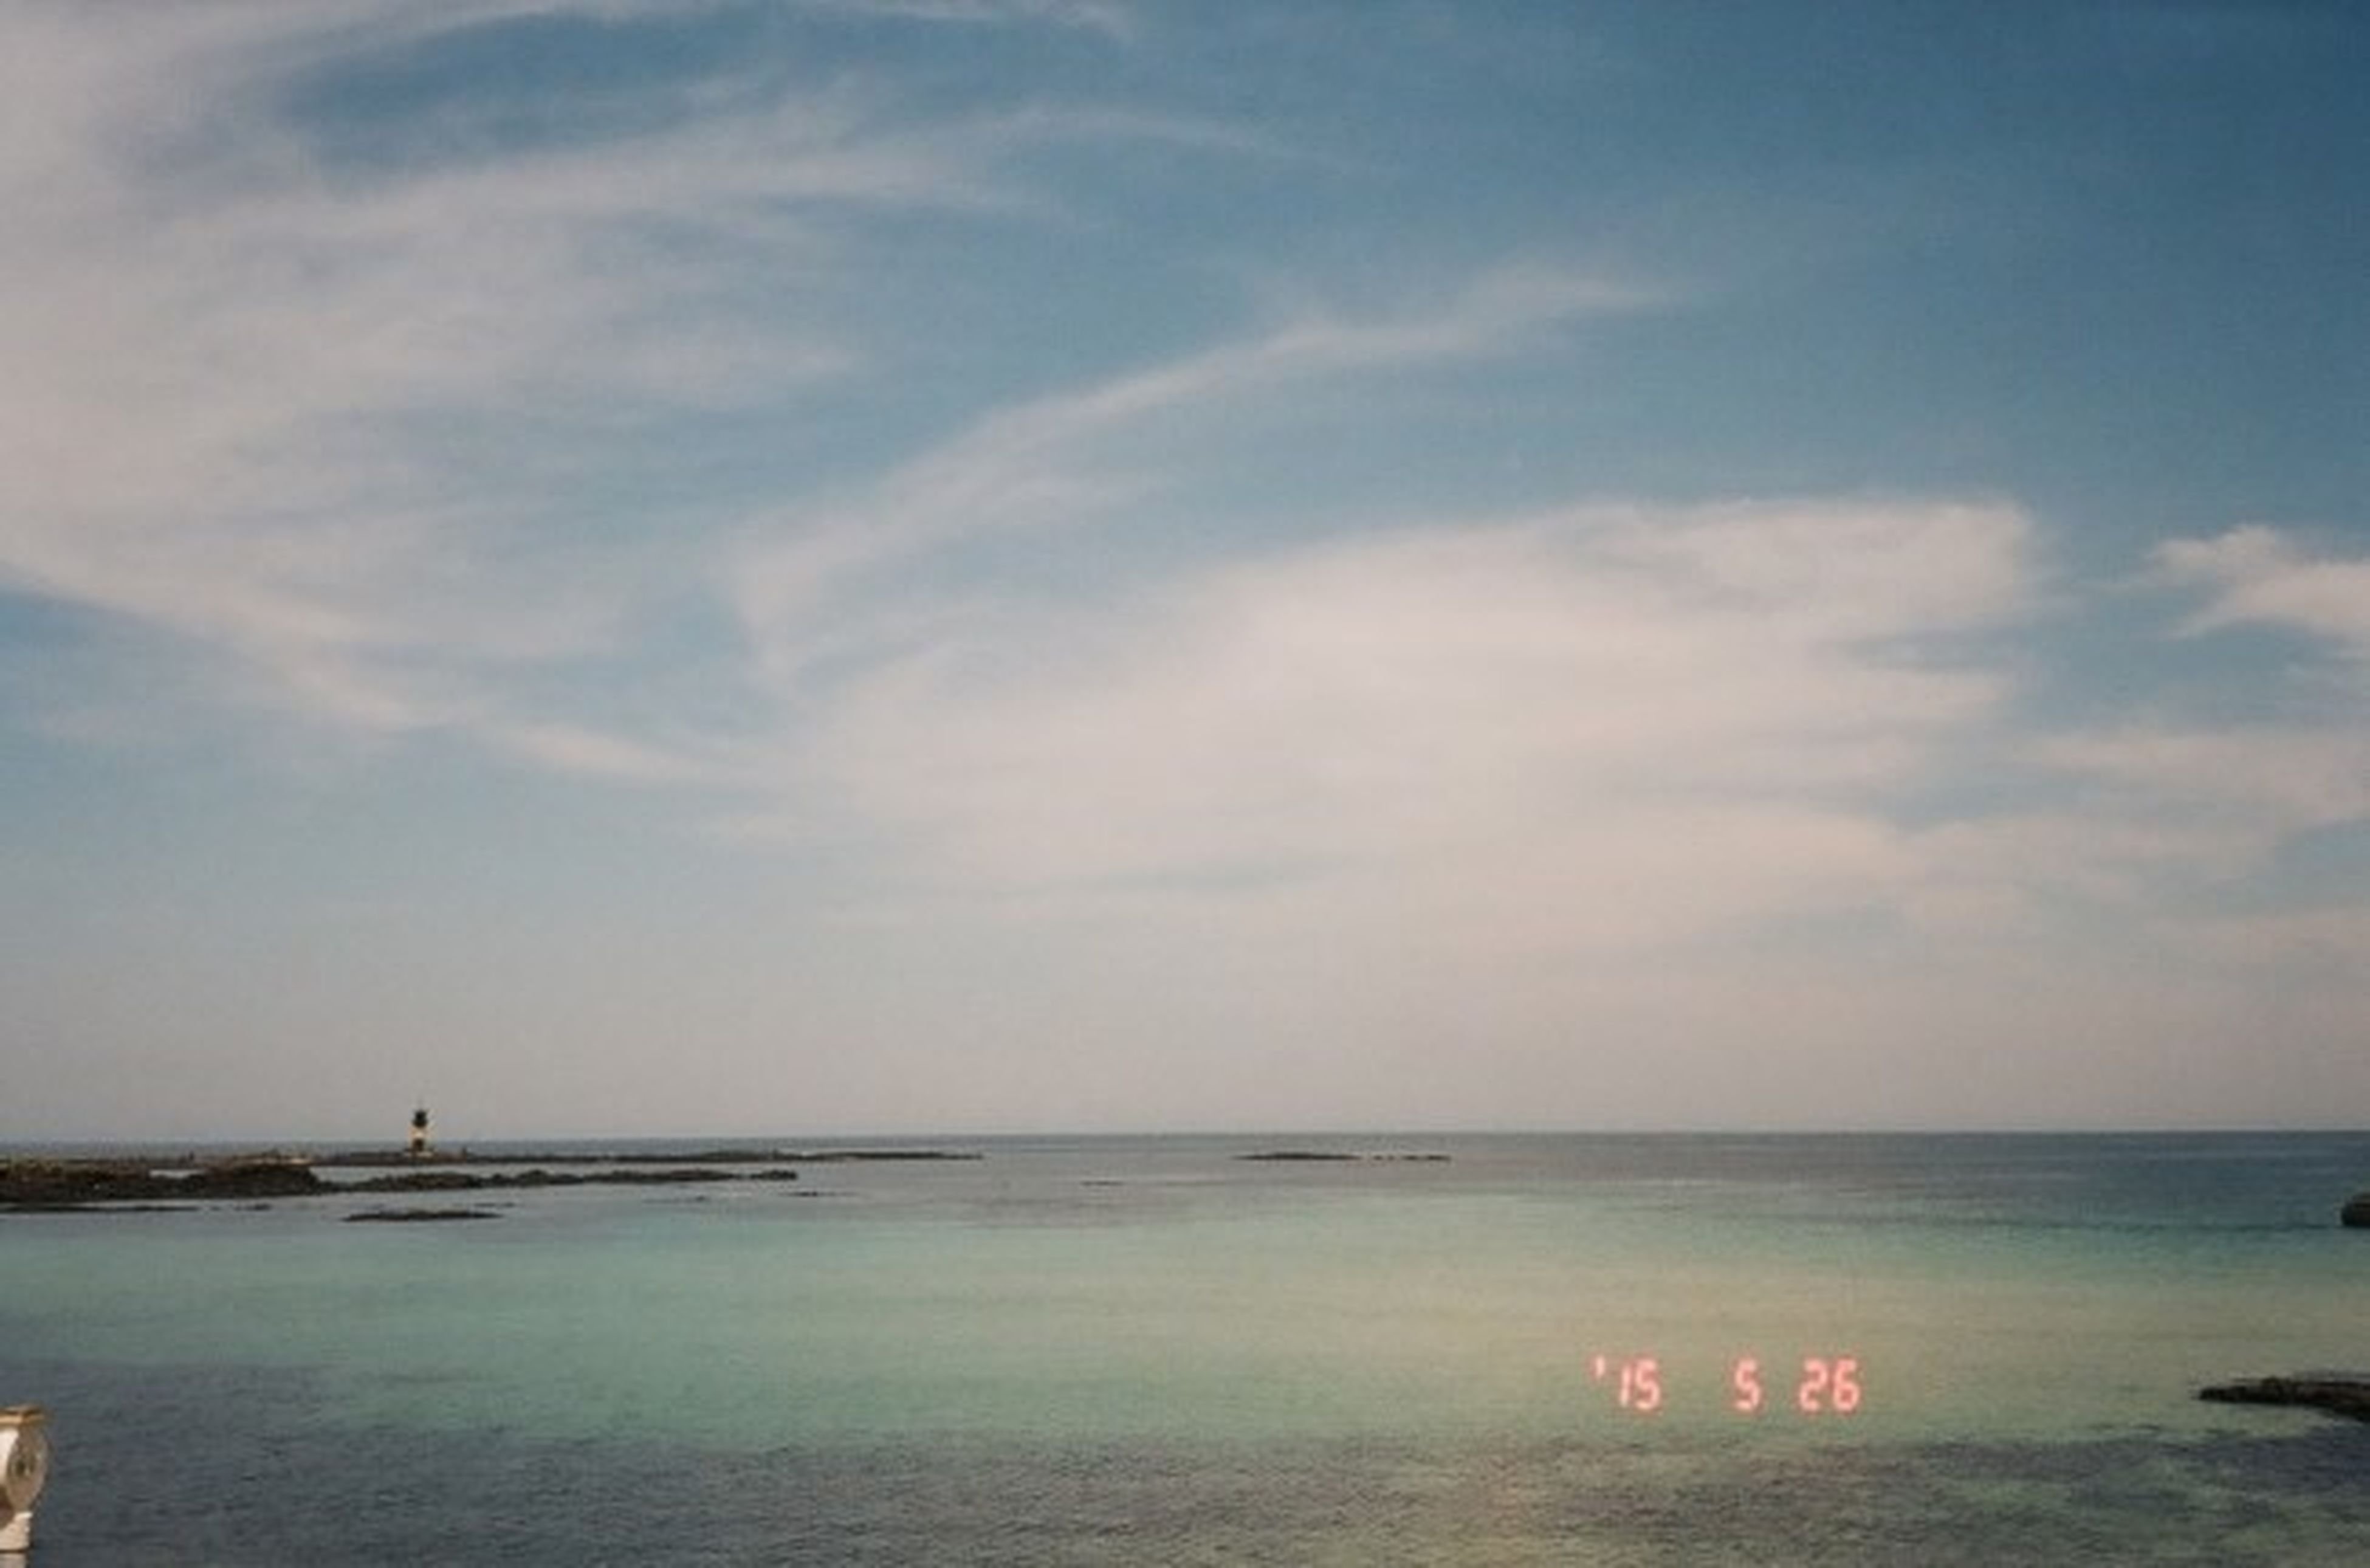 sea, water, horizon over water, sky, nautical vessel, tranquility, tranquil scene, scenics, beauty in nature, beach, nature, transportation, boat, cloud - sky, mode of transport, shore, idyllic, waterfront, outdoors, cloud